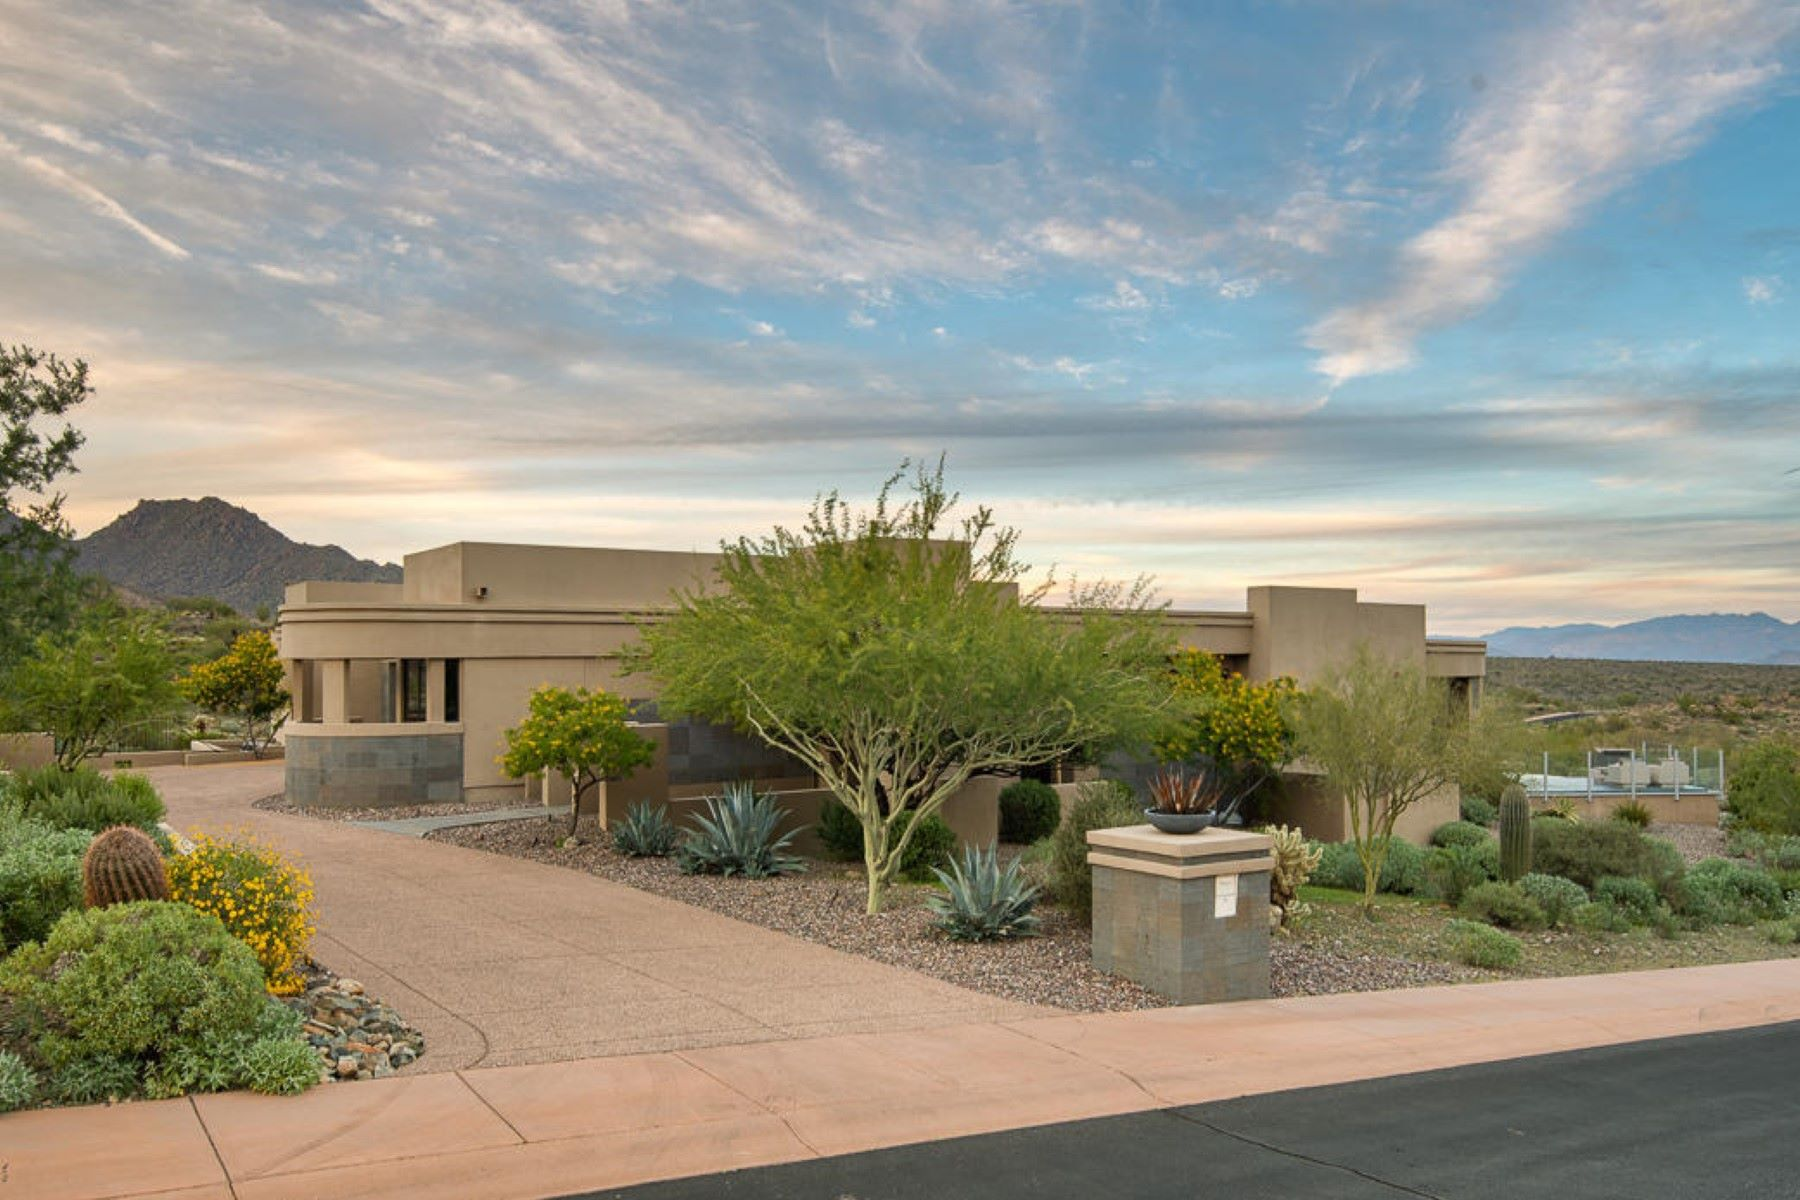 Single Family Homes for Sale at Eagles Nest 14212 E PALOMA PL, Fountain Hills, Arizona 85268 United States